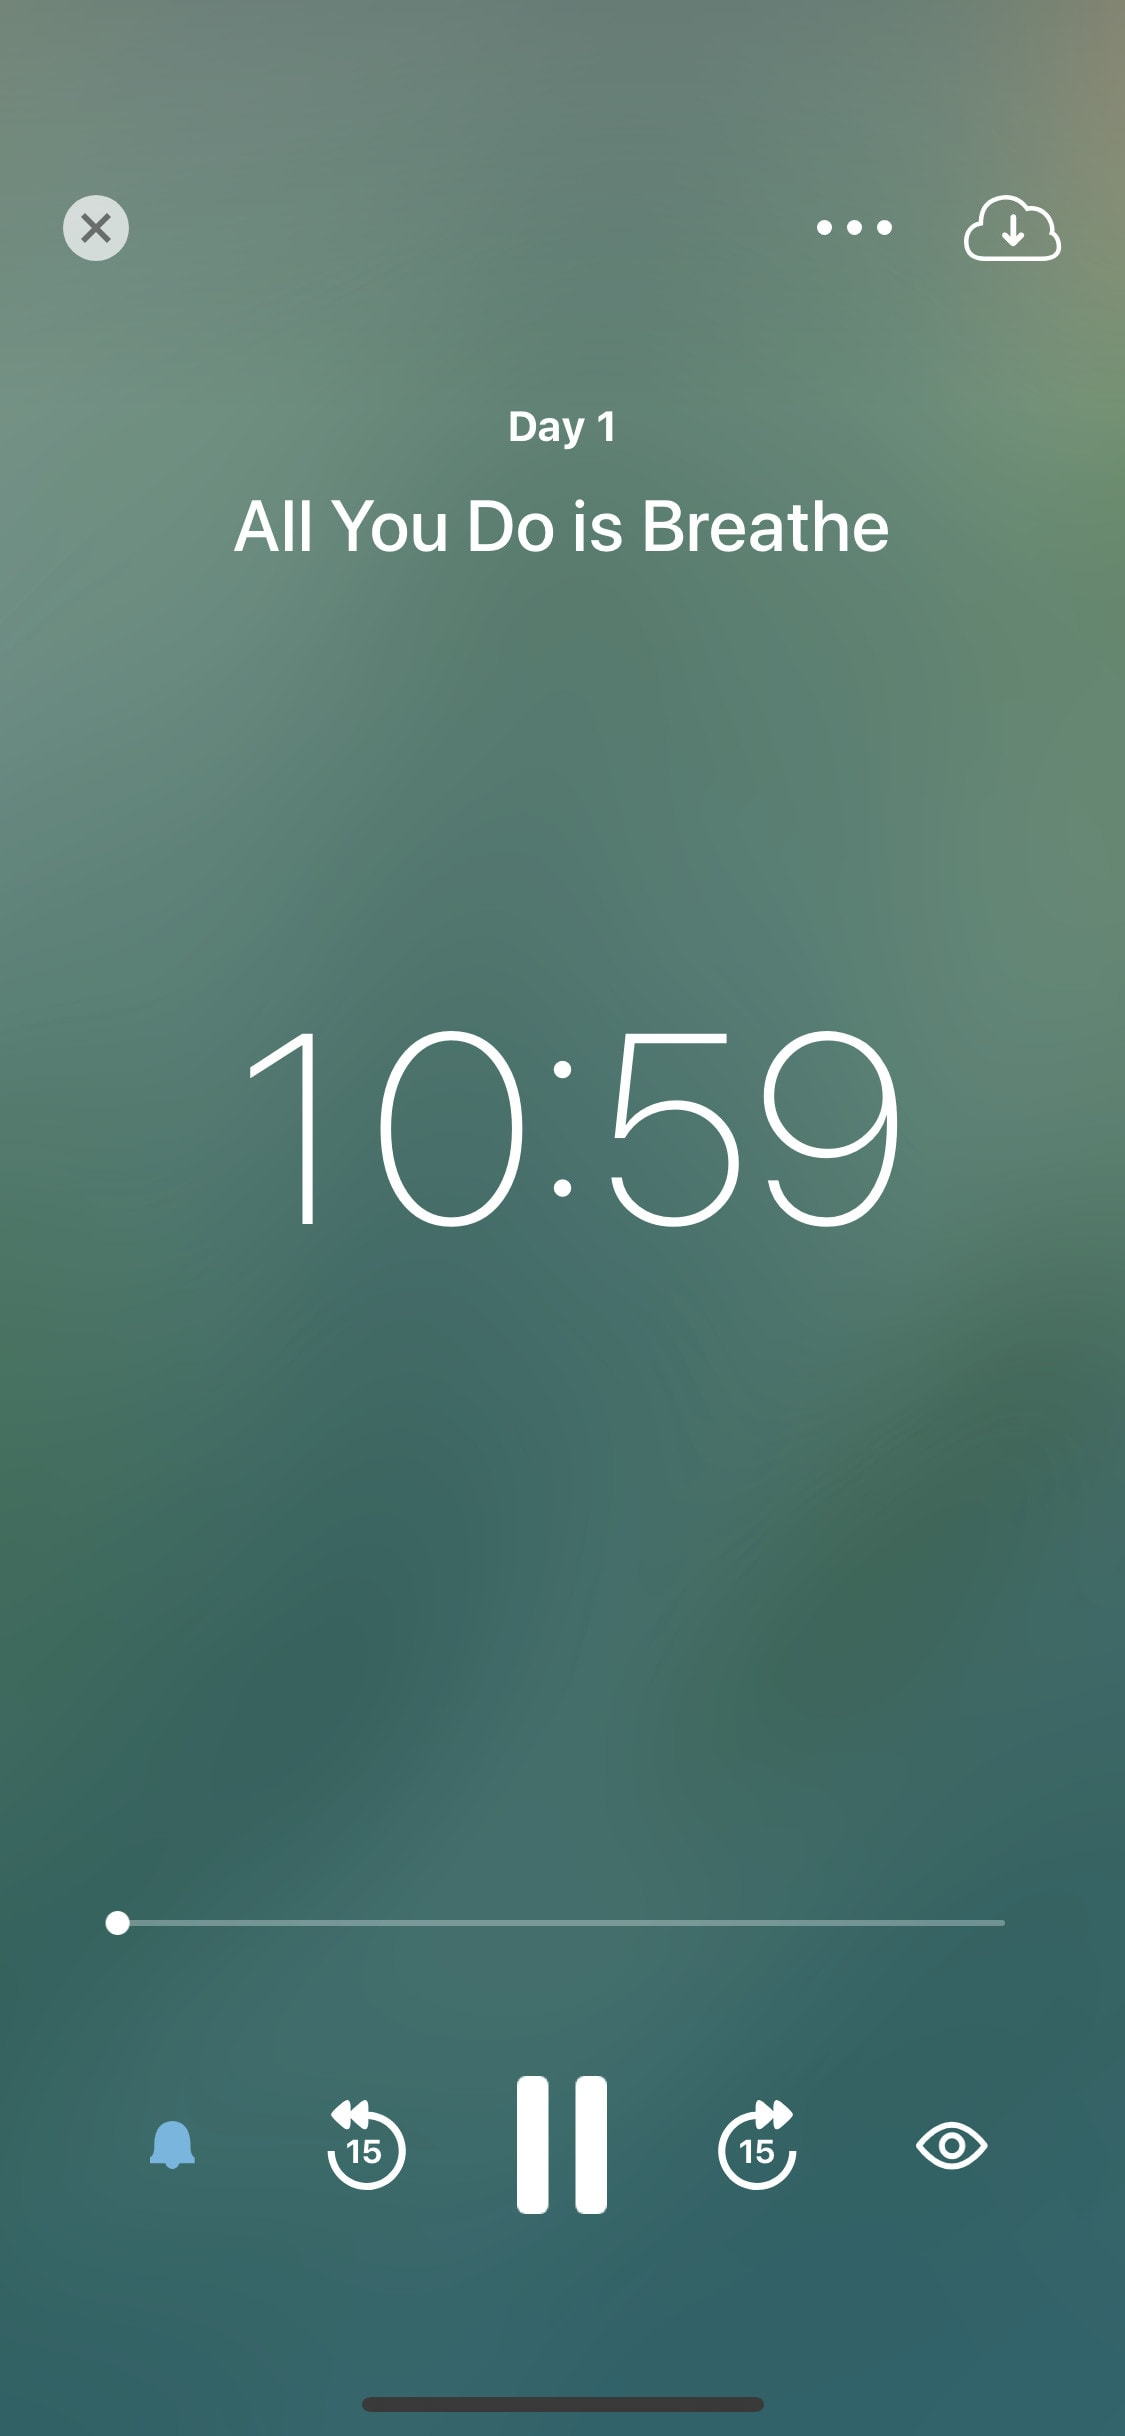 Music player by Insight Timer on iOS